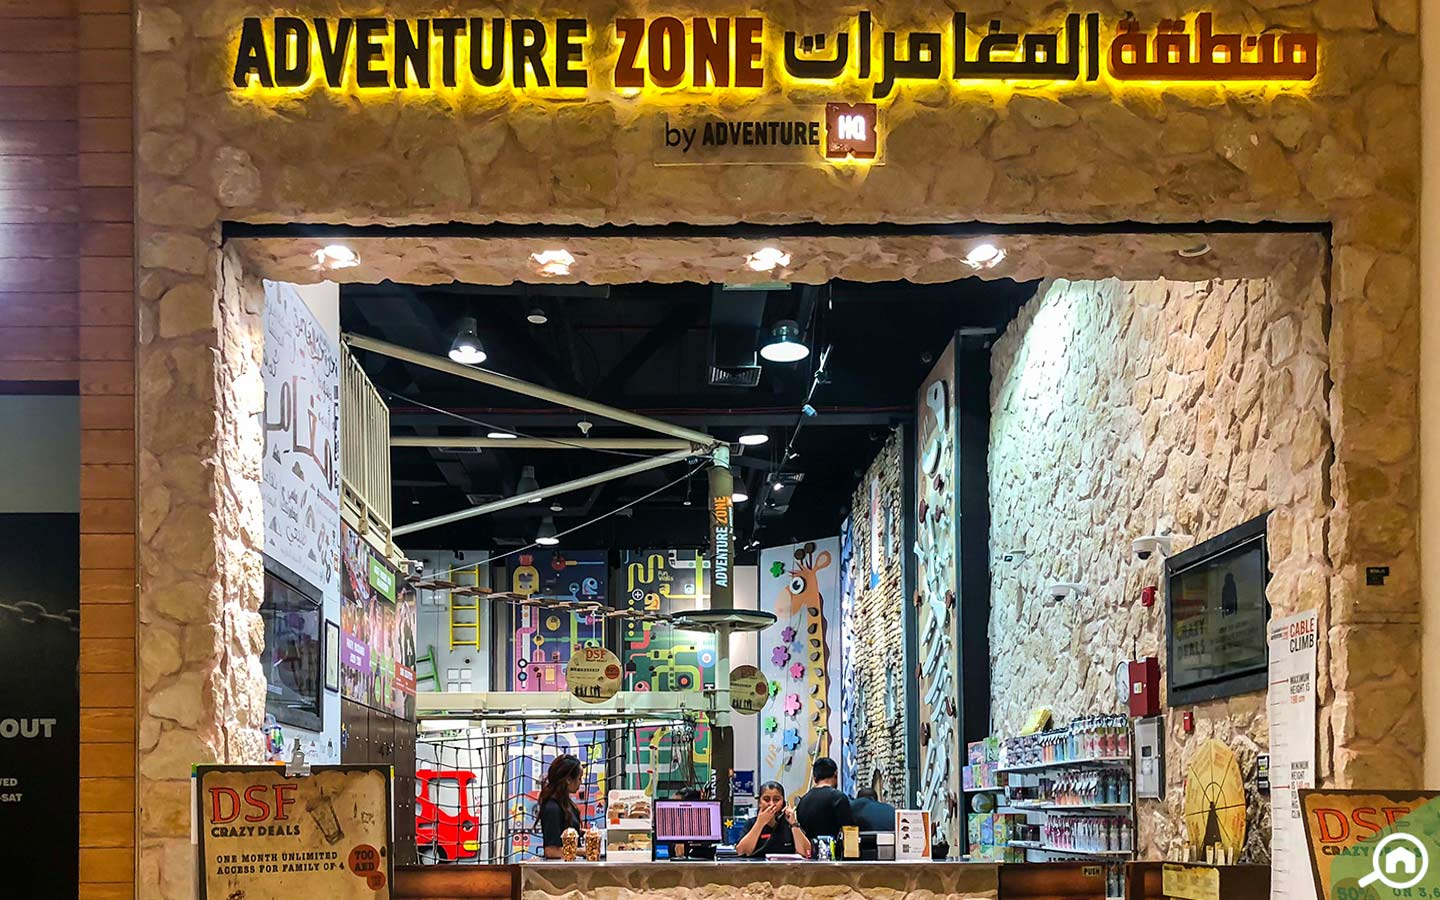 Adventure Zone at Galleria Mall Dubai